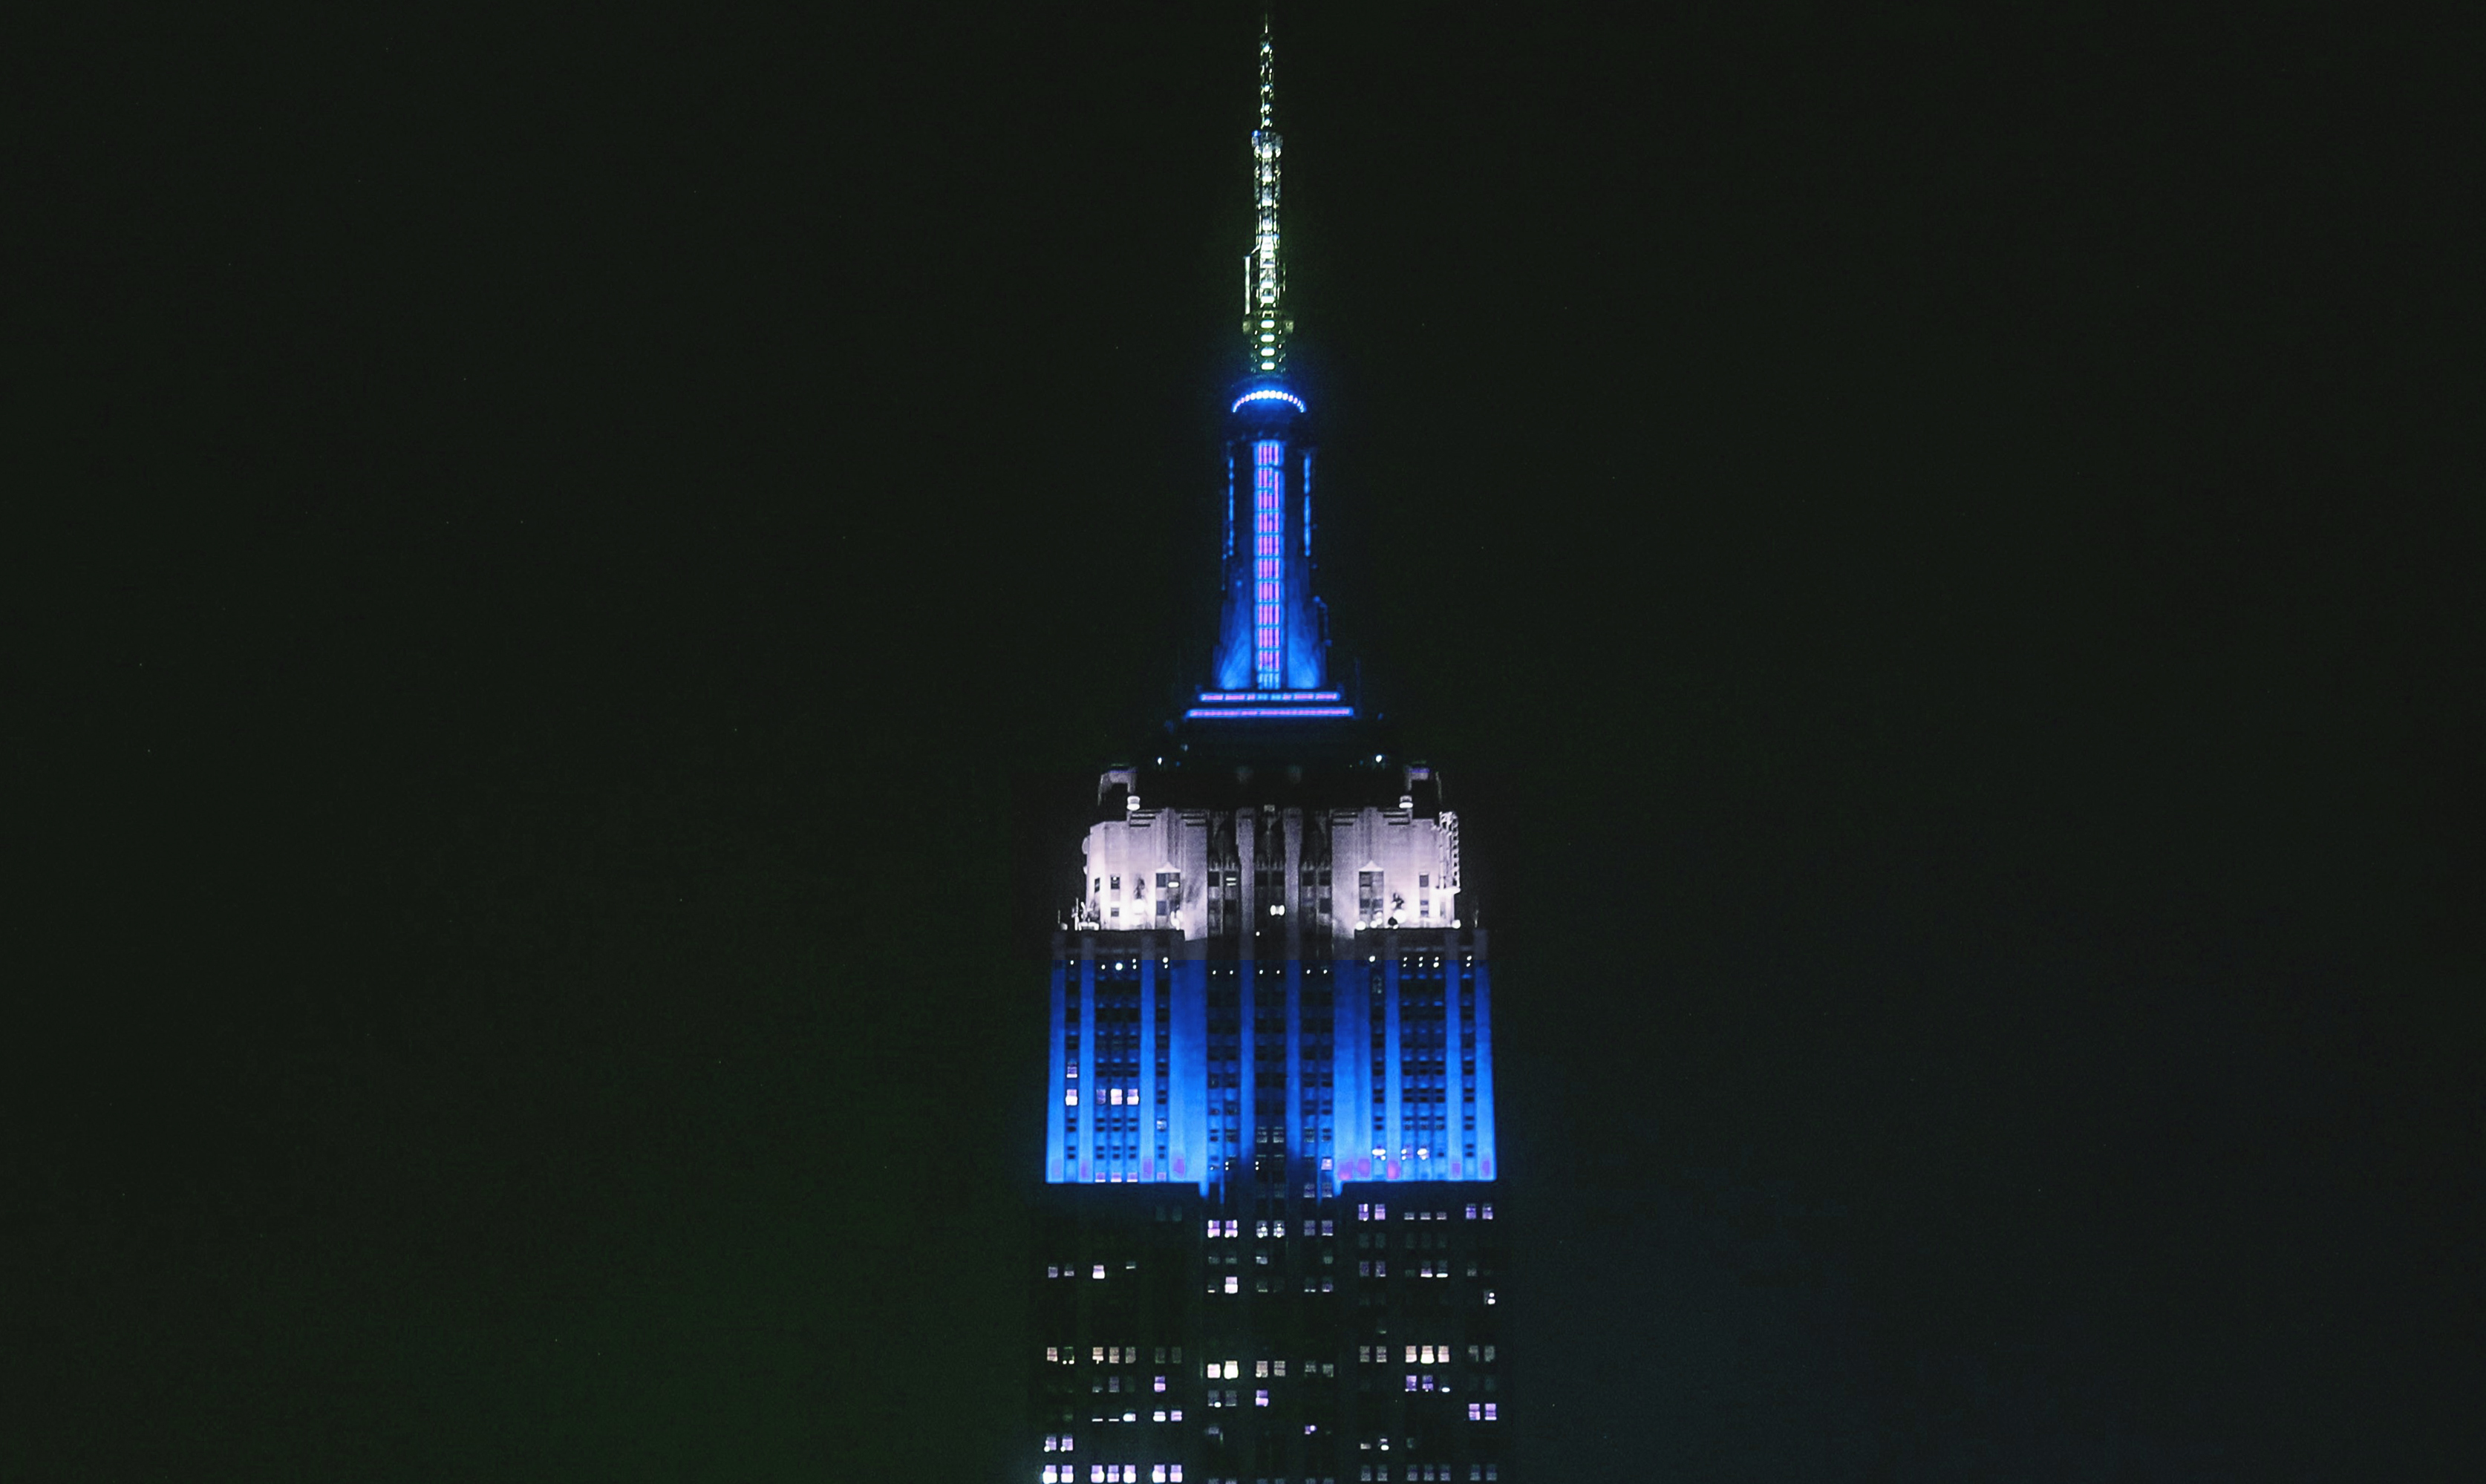 A modified image showing how the tower would look in blue and white (Getty Images)